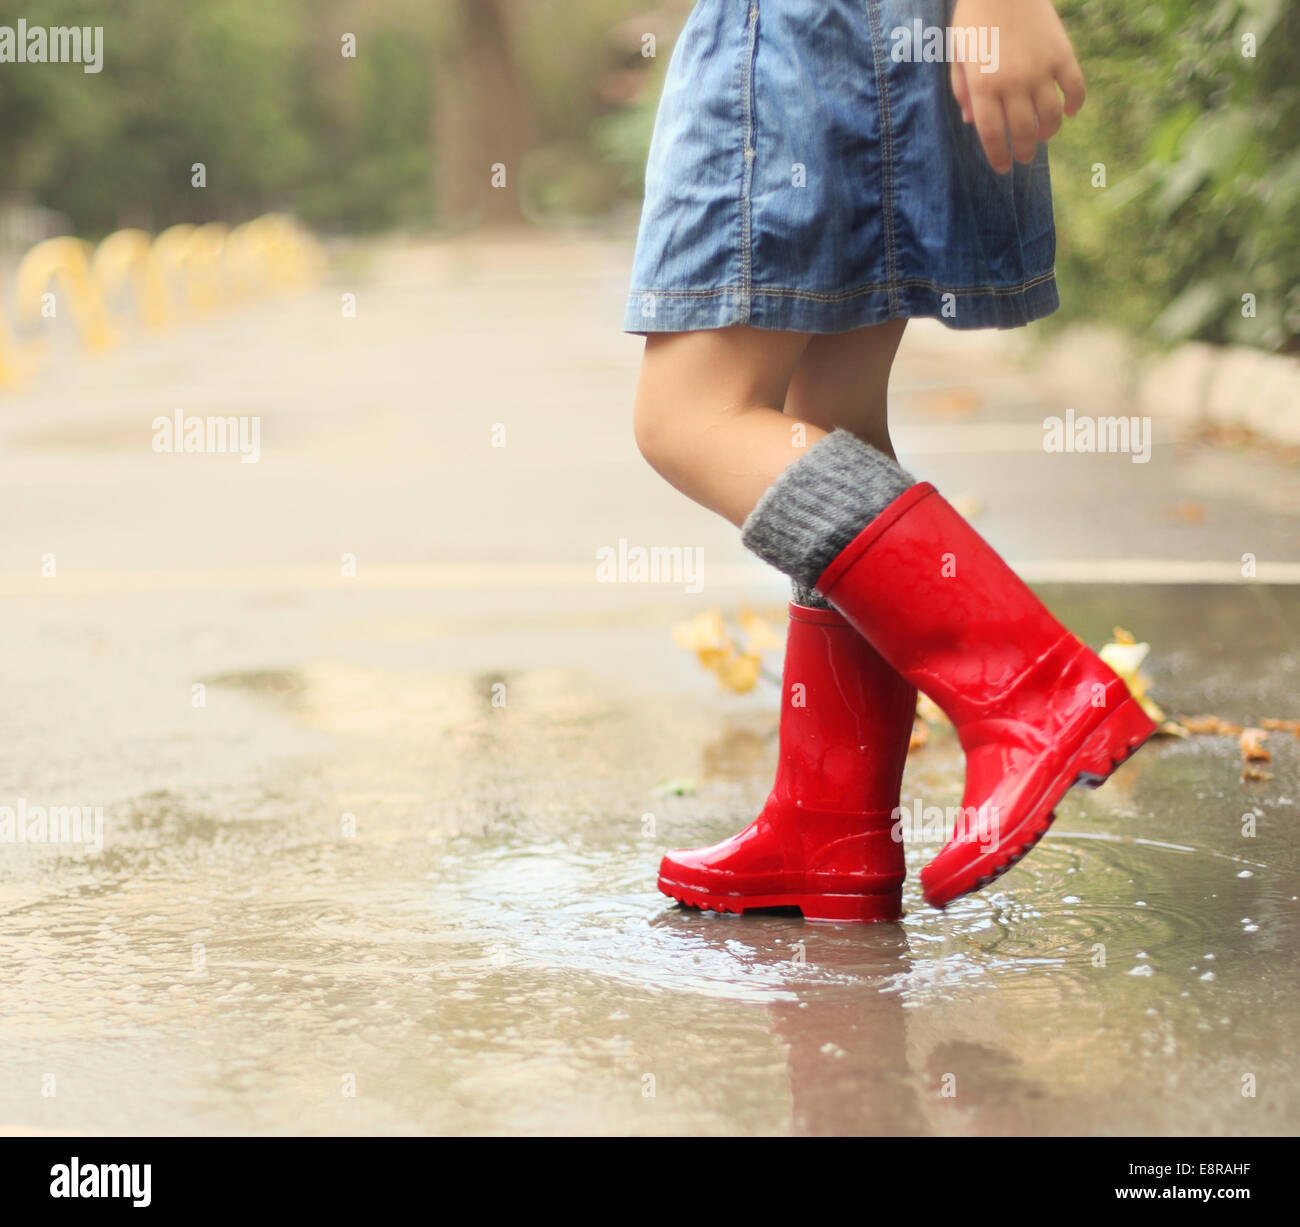 85179086fb1 Child wearing red rain boots jumping into a puddle. Close up Stock ...